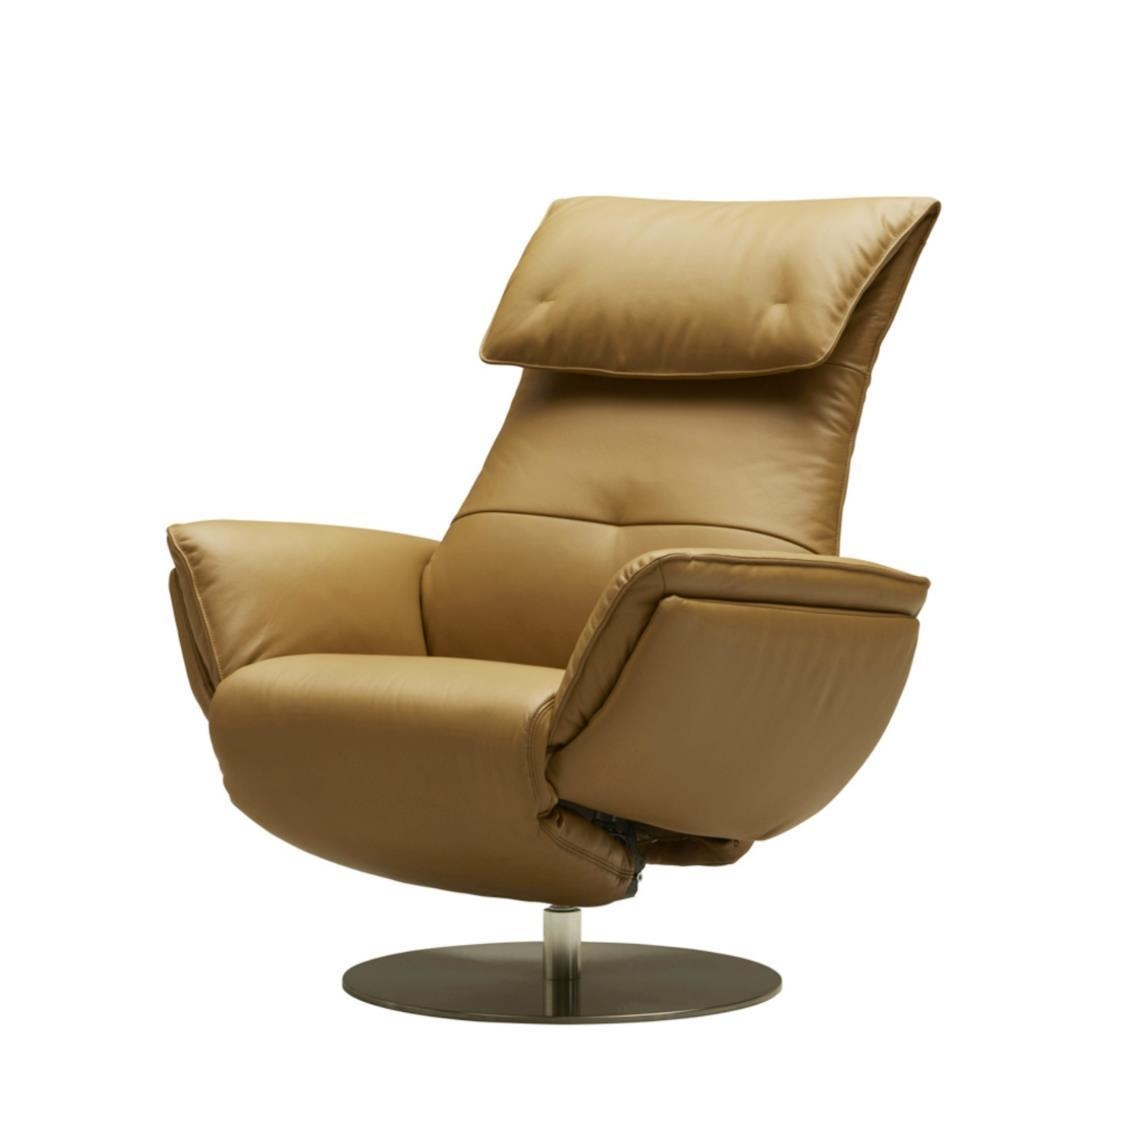 Wolke Chair - Full Leather L668 Mustard